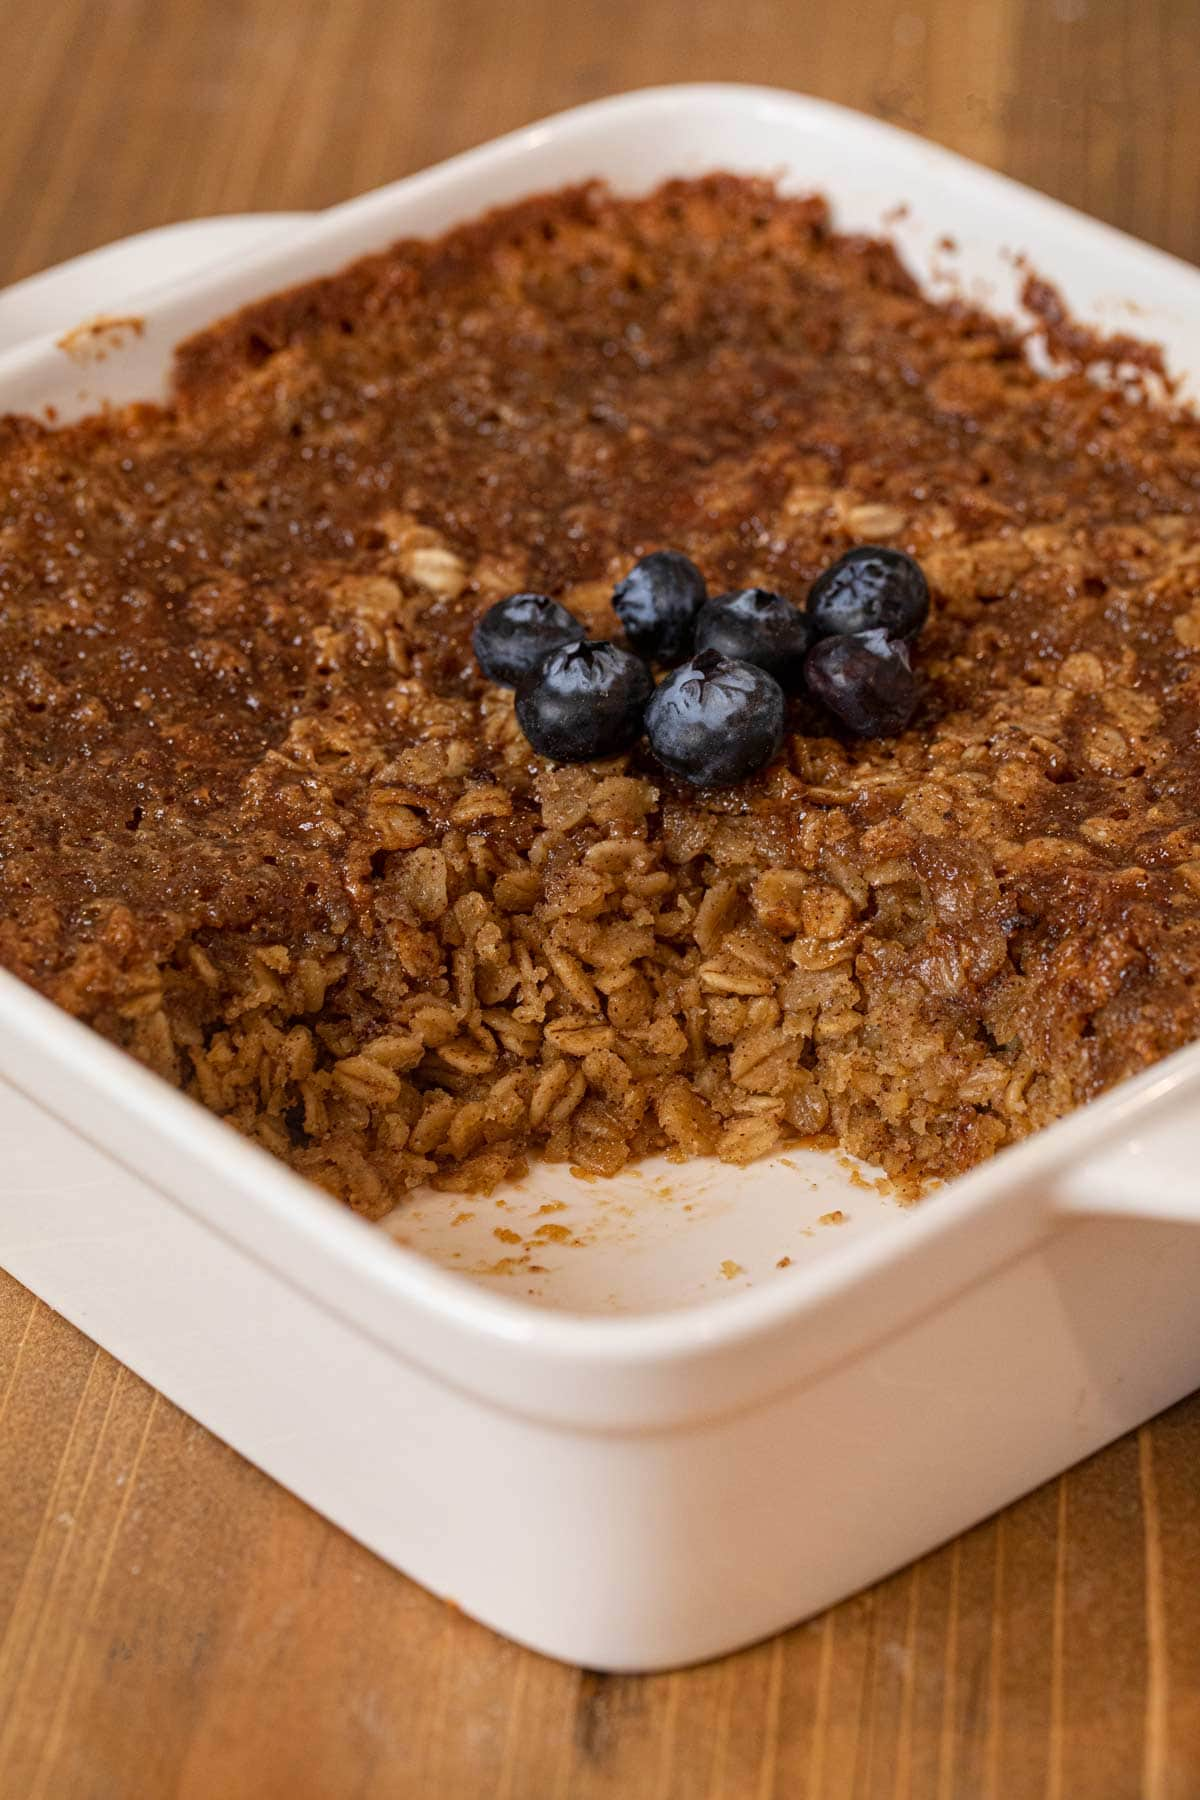 Baked Oatmeal in baking dish with portion removed